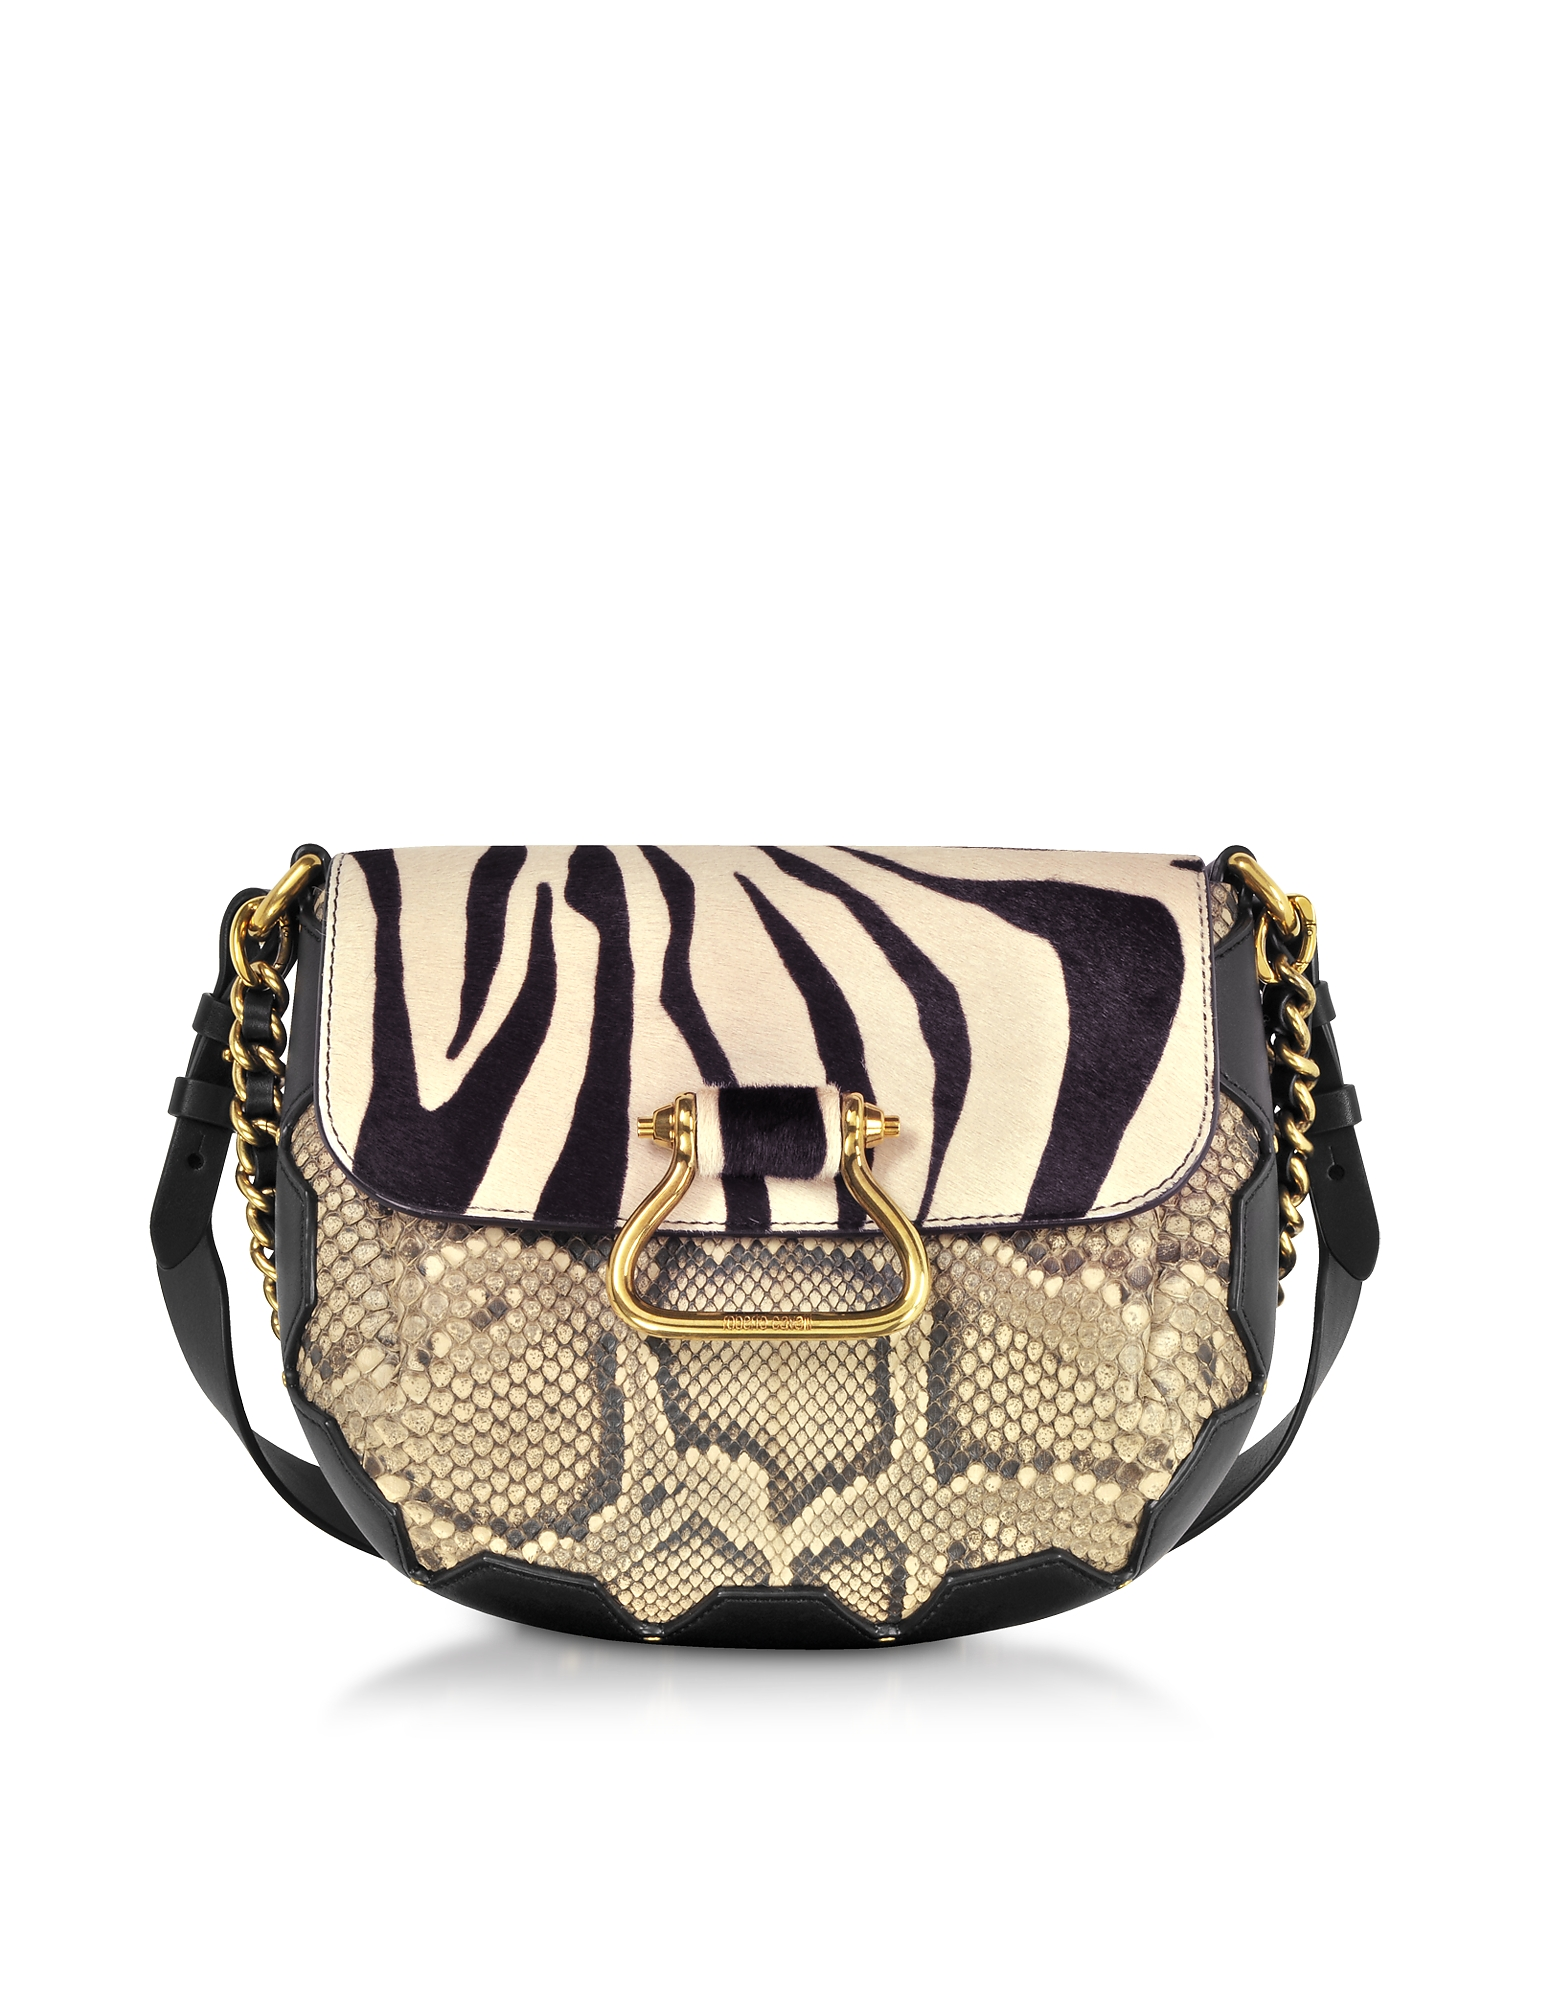 Roberto Cavalli Handbags, Black/Alabaster Zebra Pony Hair and Gold Python Medium Shoulder Bag